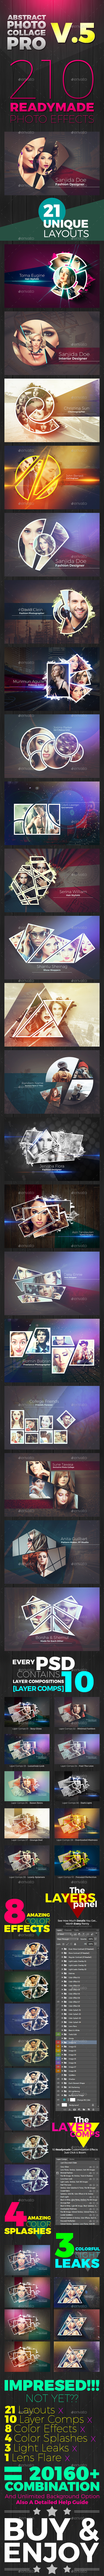 Abstract Photo Collage Pro v.51